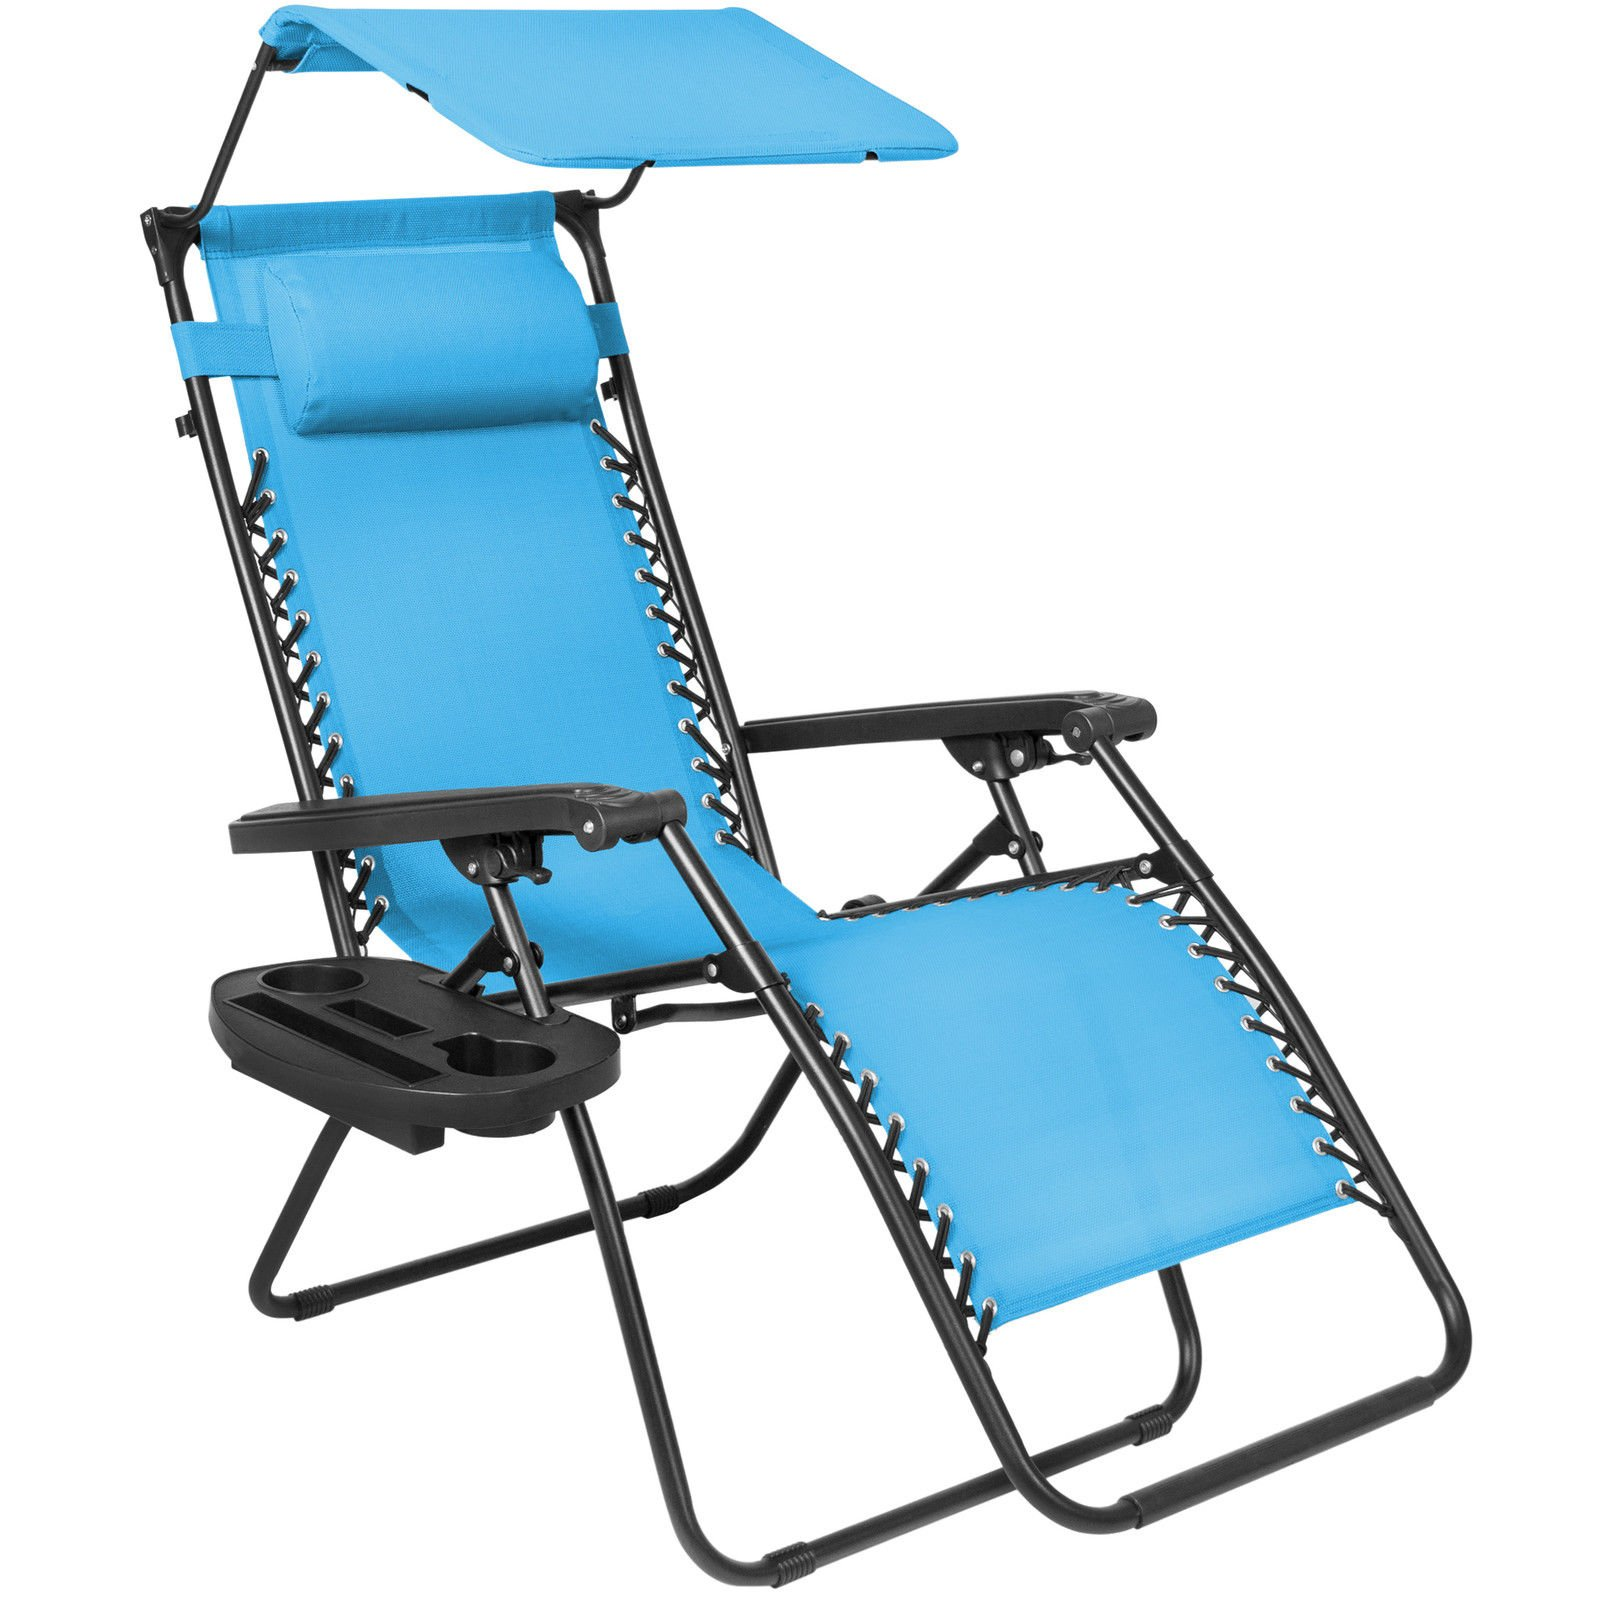 Creative Comfort Design Folding Zero Gravity Lounge Chair With Canopy & Magazine Cup Holder Provides Relaxation, Peace and Serenity With Its Mesh Fabric (Light Blue)